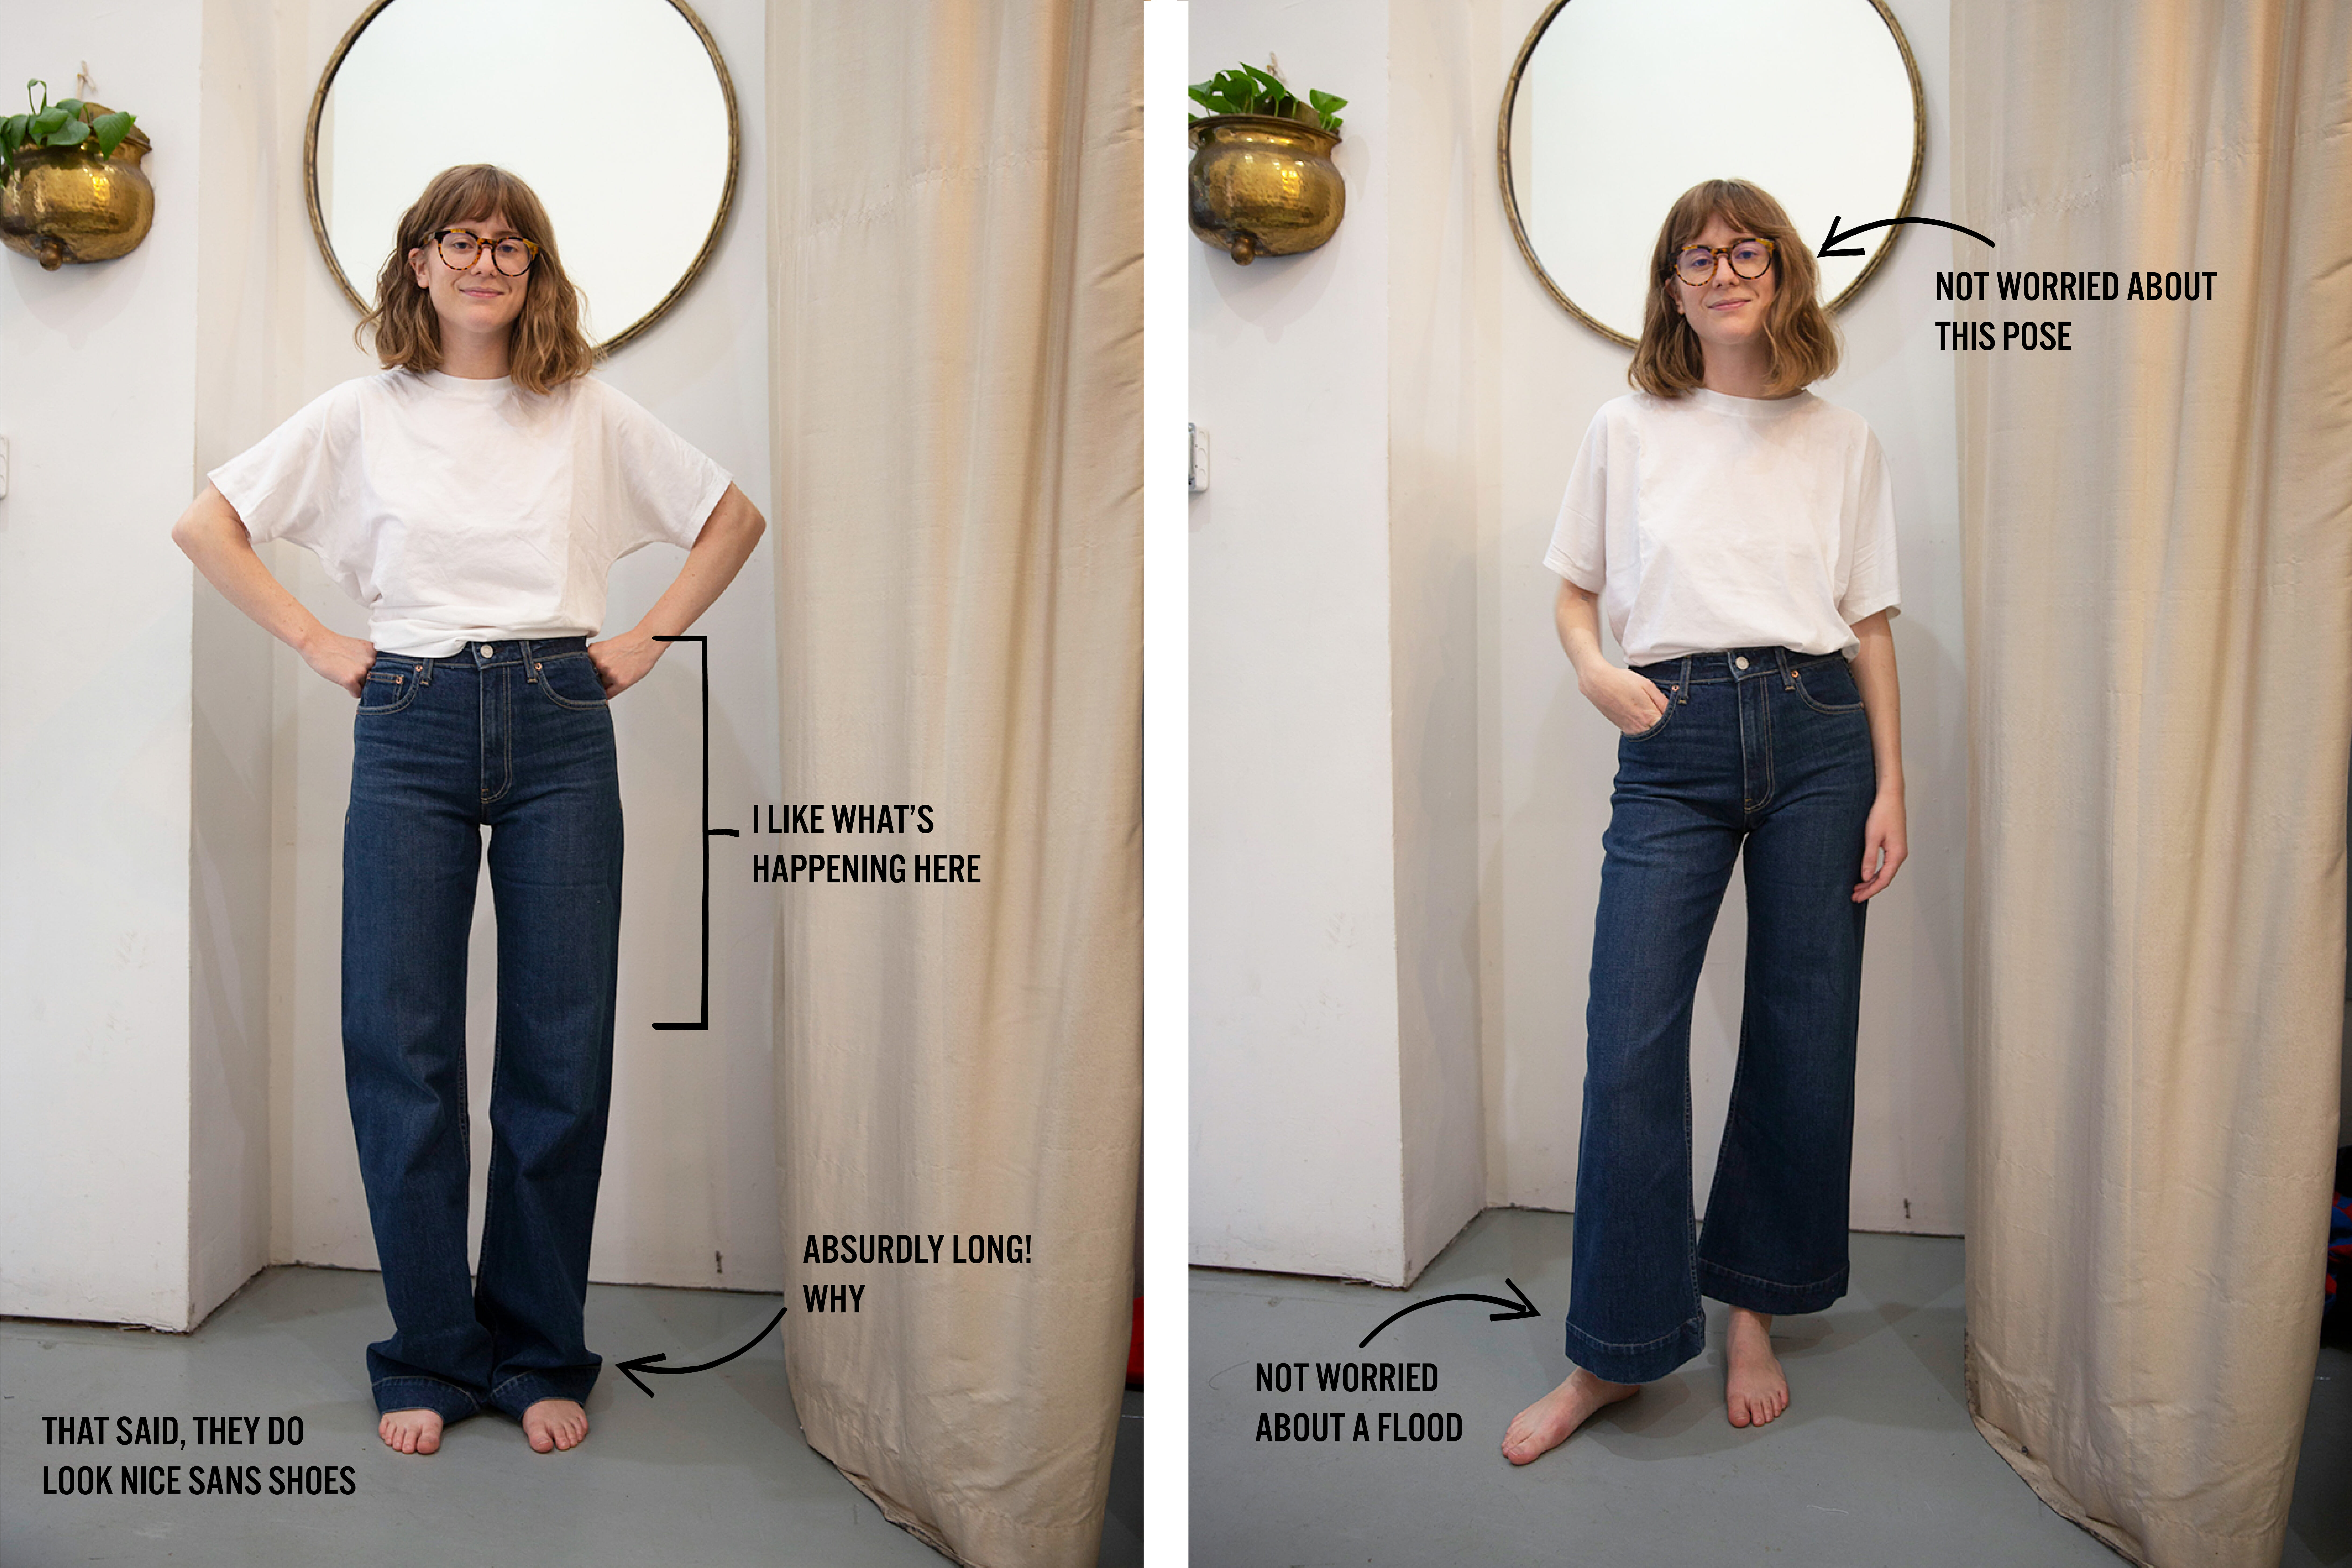 The Absurdly Long Jeans